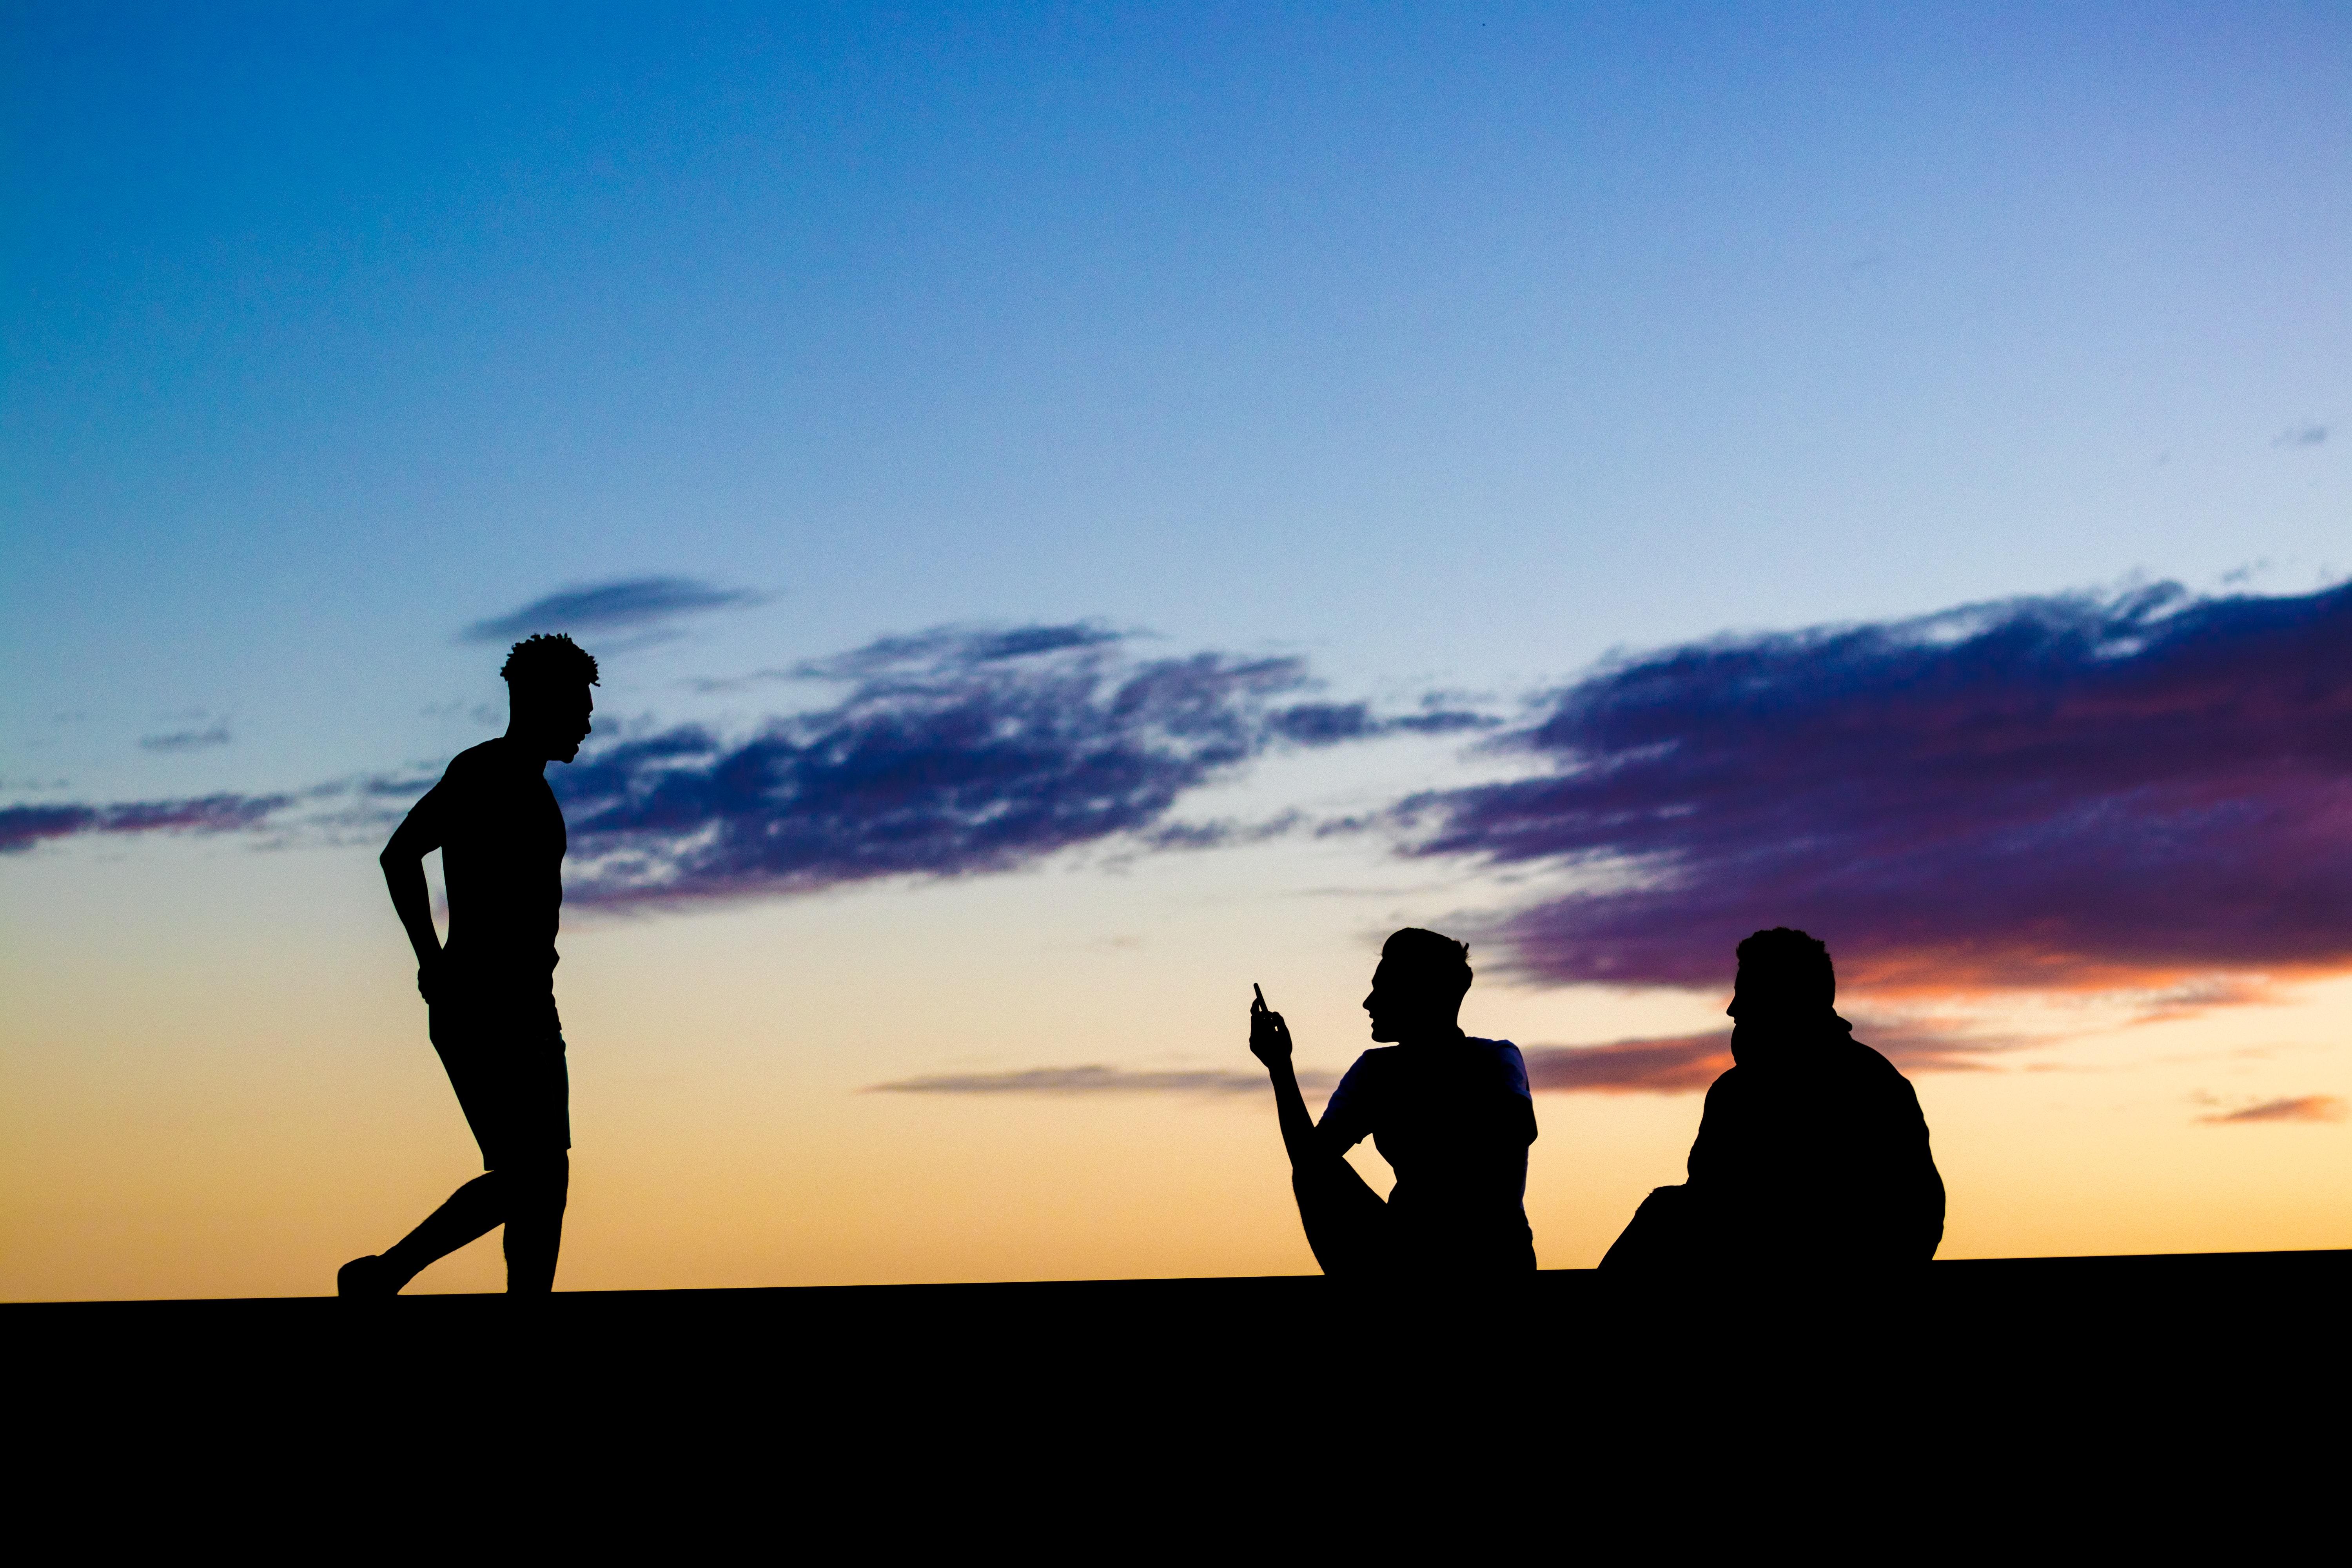 Silhouette of a man walking towards two friends sitting under a blue and orange Laton sunset